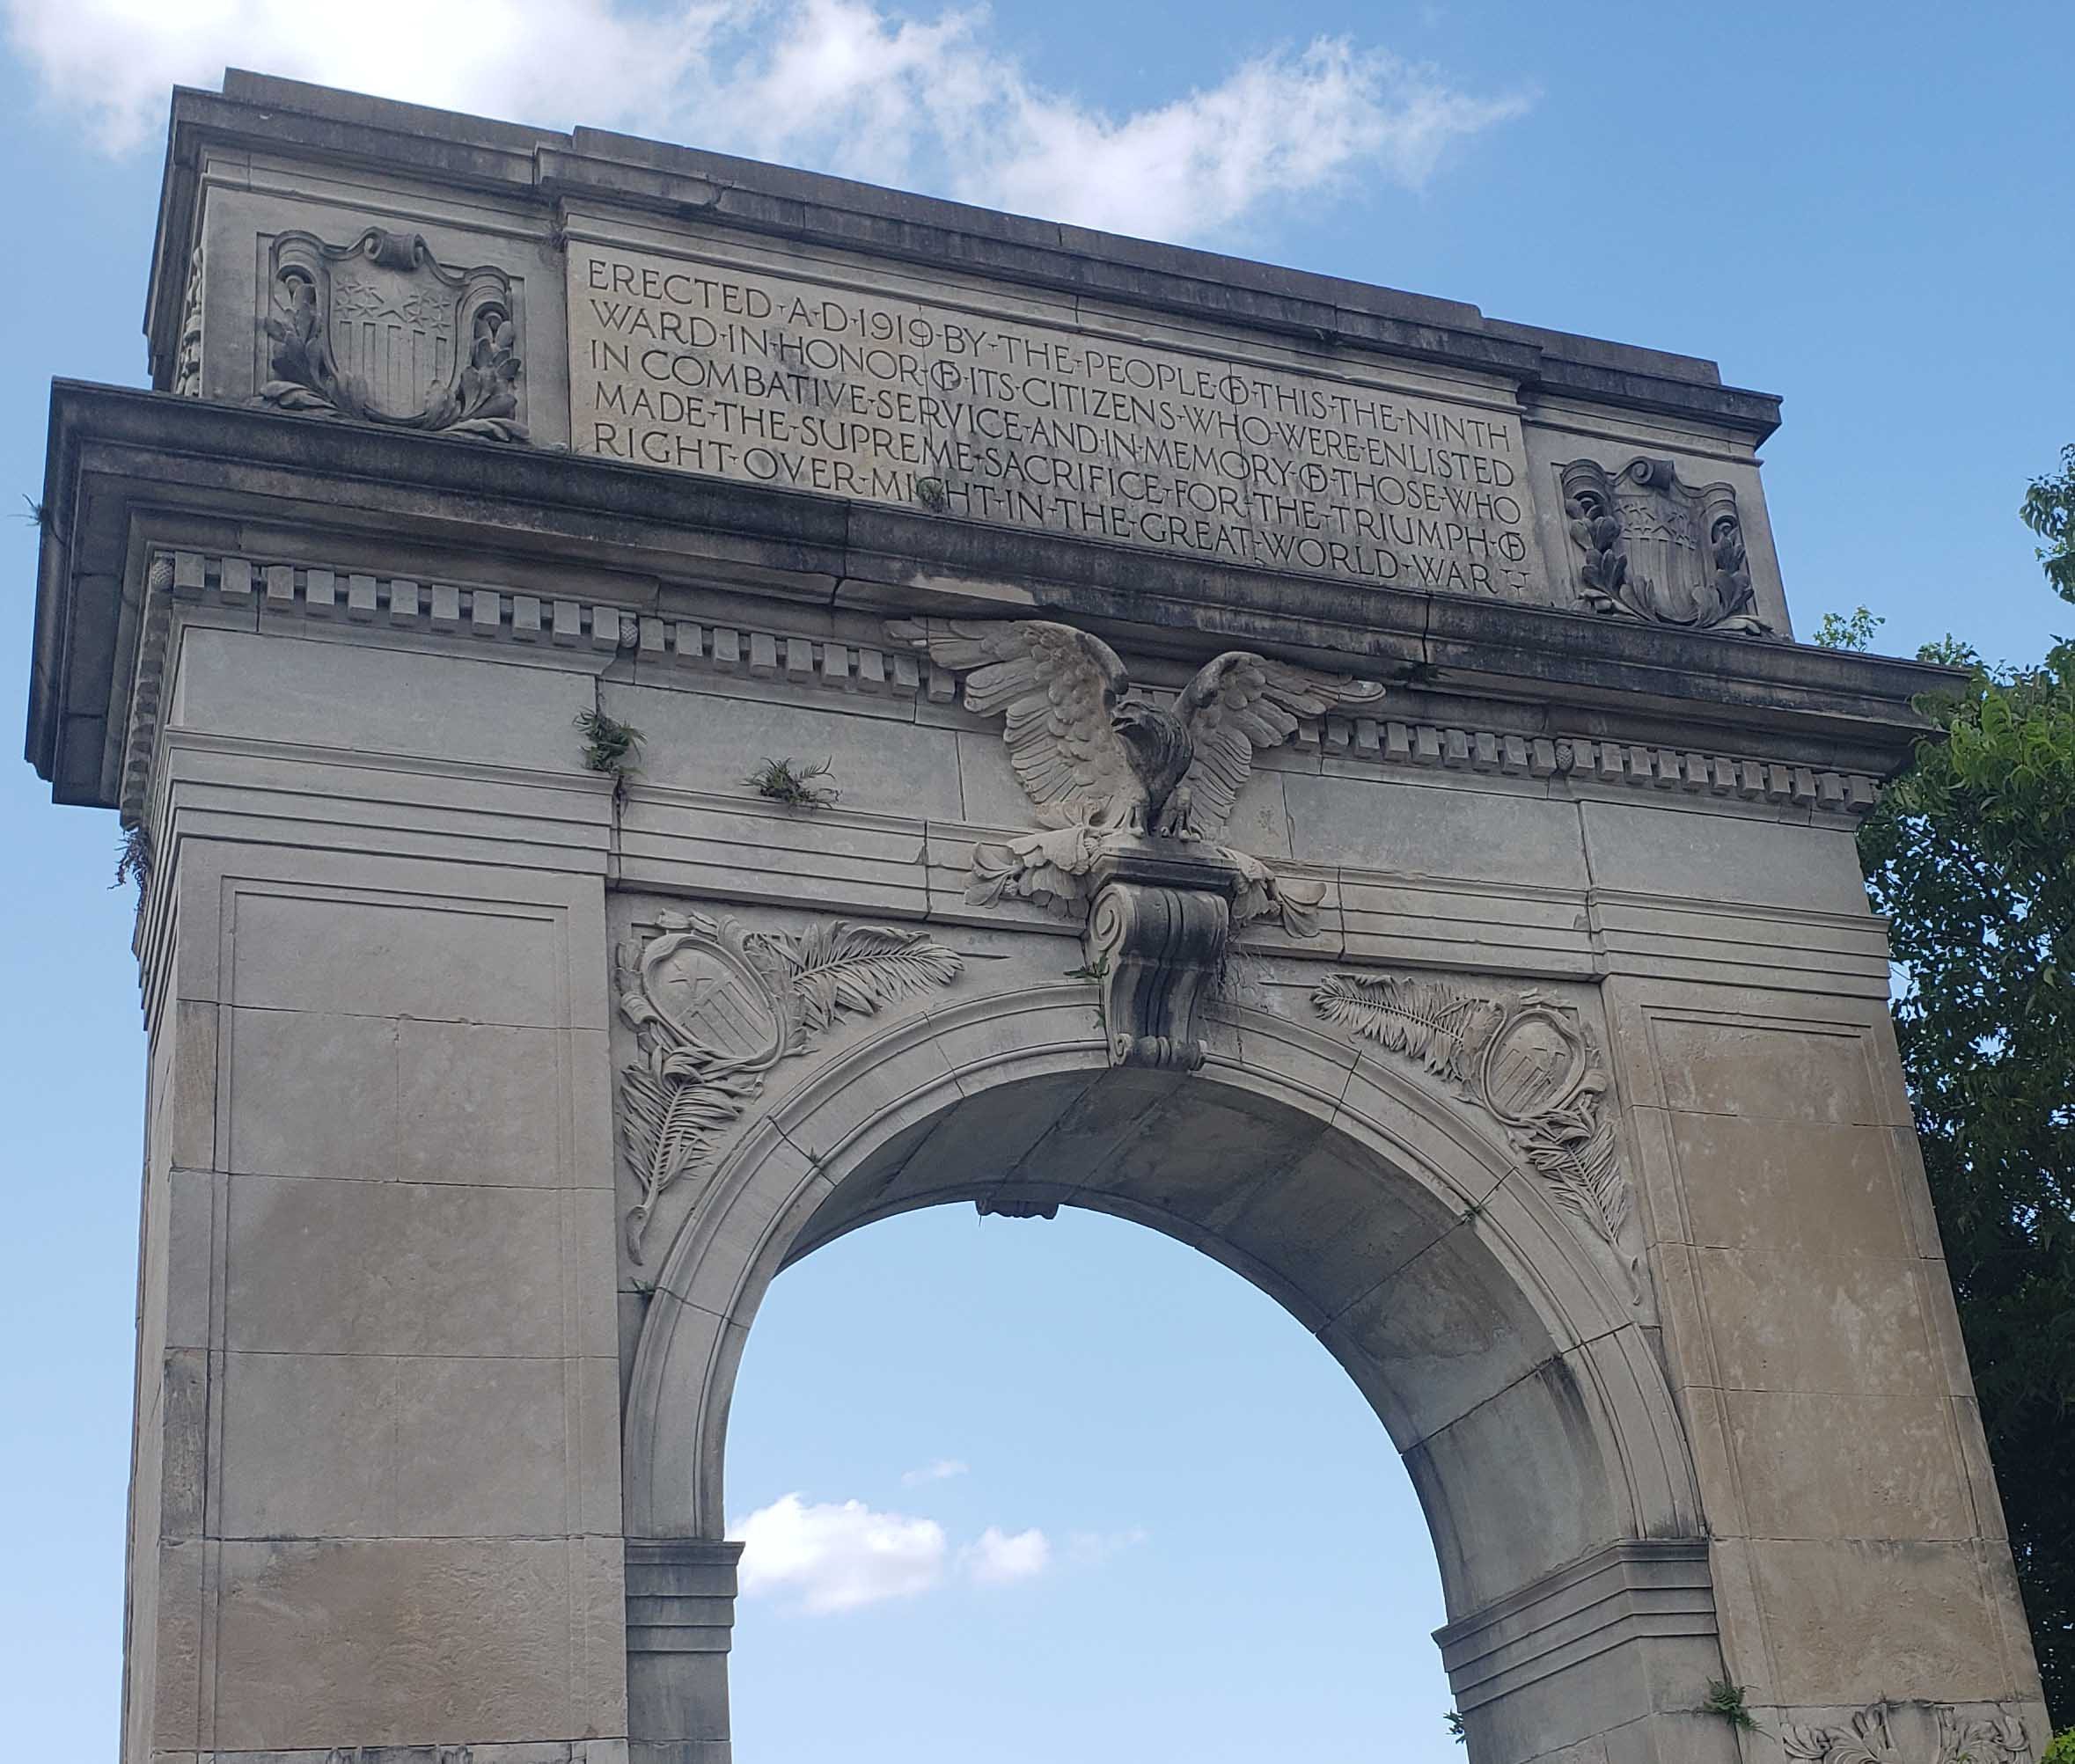 Victory Arch Dedicated In 1919 To People of the 9th Ward Who Fought & Died In World War I